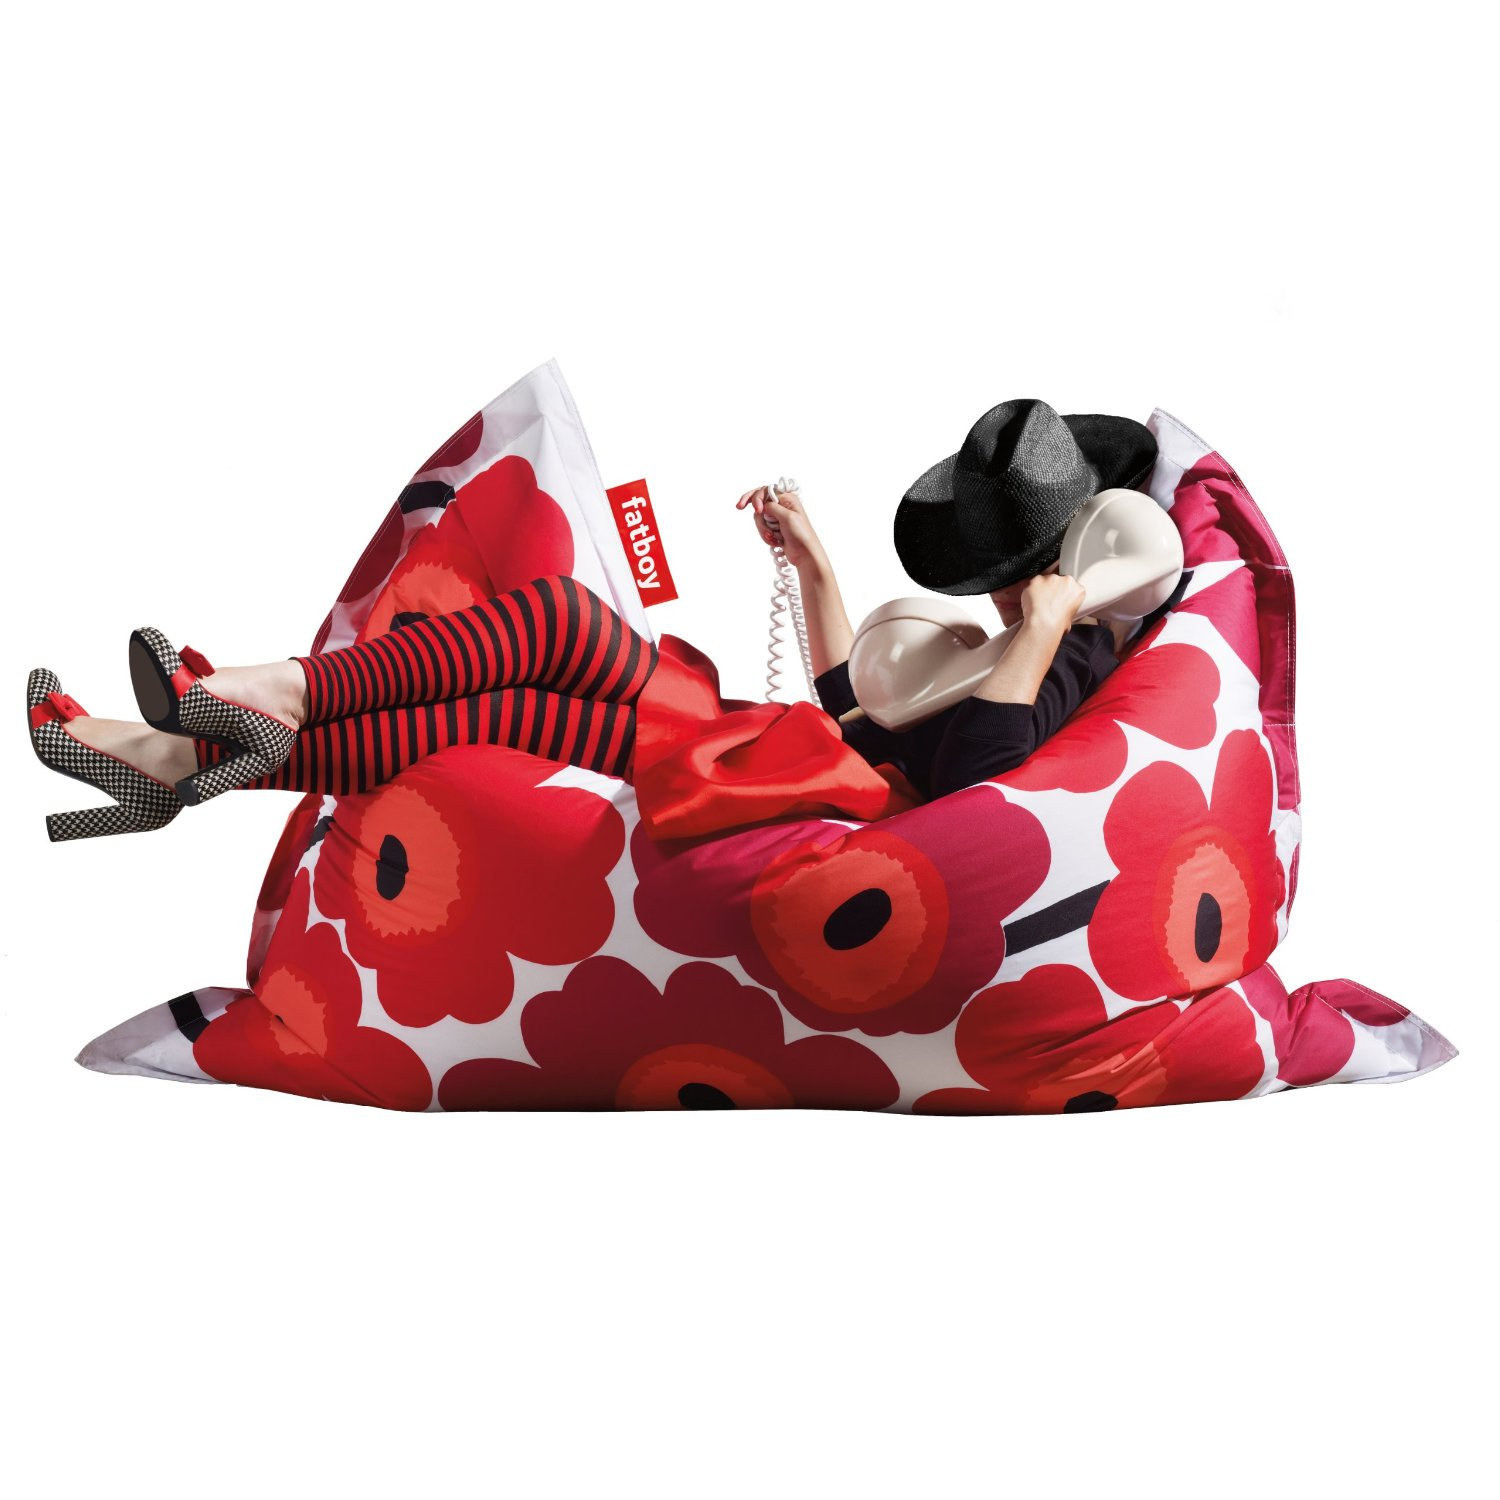 Fun Funky Baby: Lounge In Style With Modern Bean Bags From Fatboy